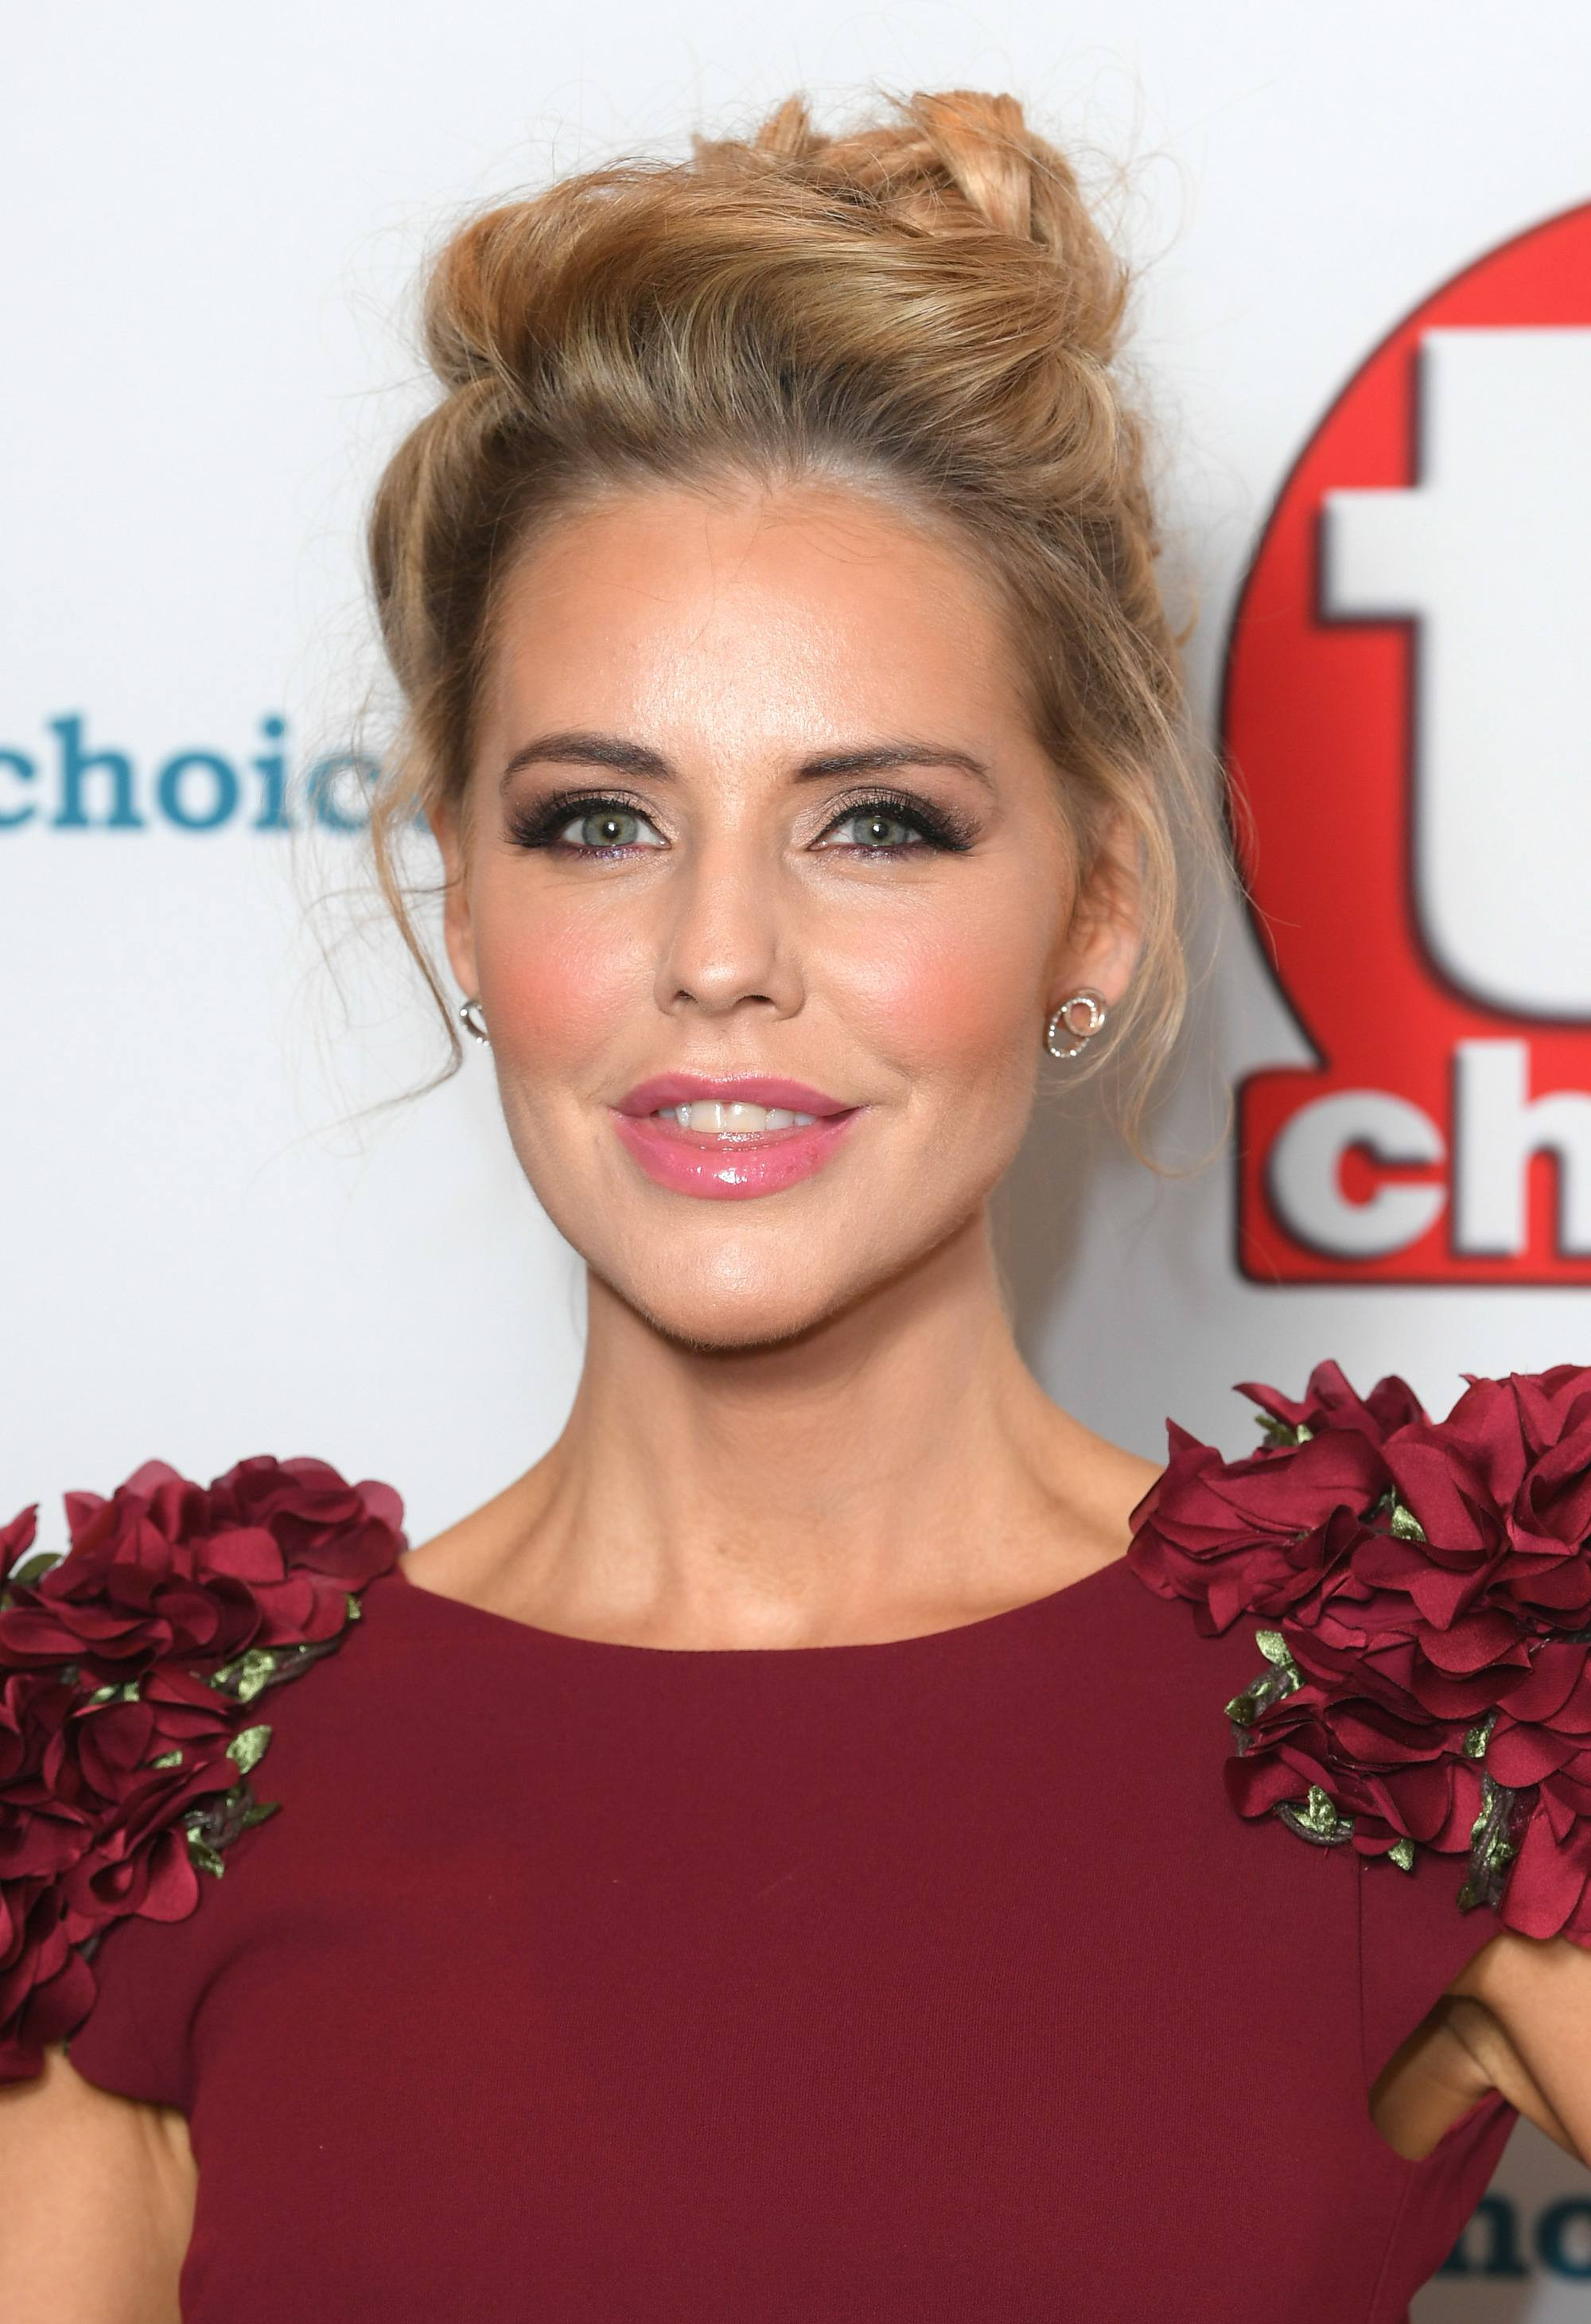 TV Choice Awards 2018 Hollyoaks actress Stephanie Waring with hair in an updo